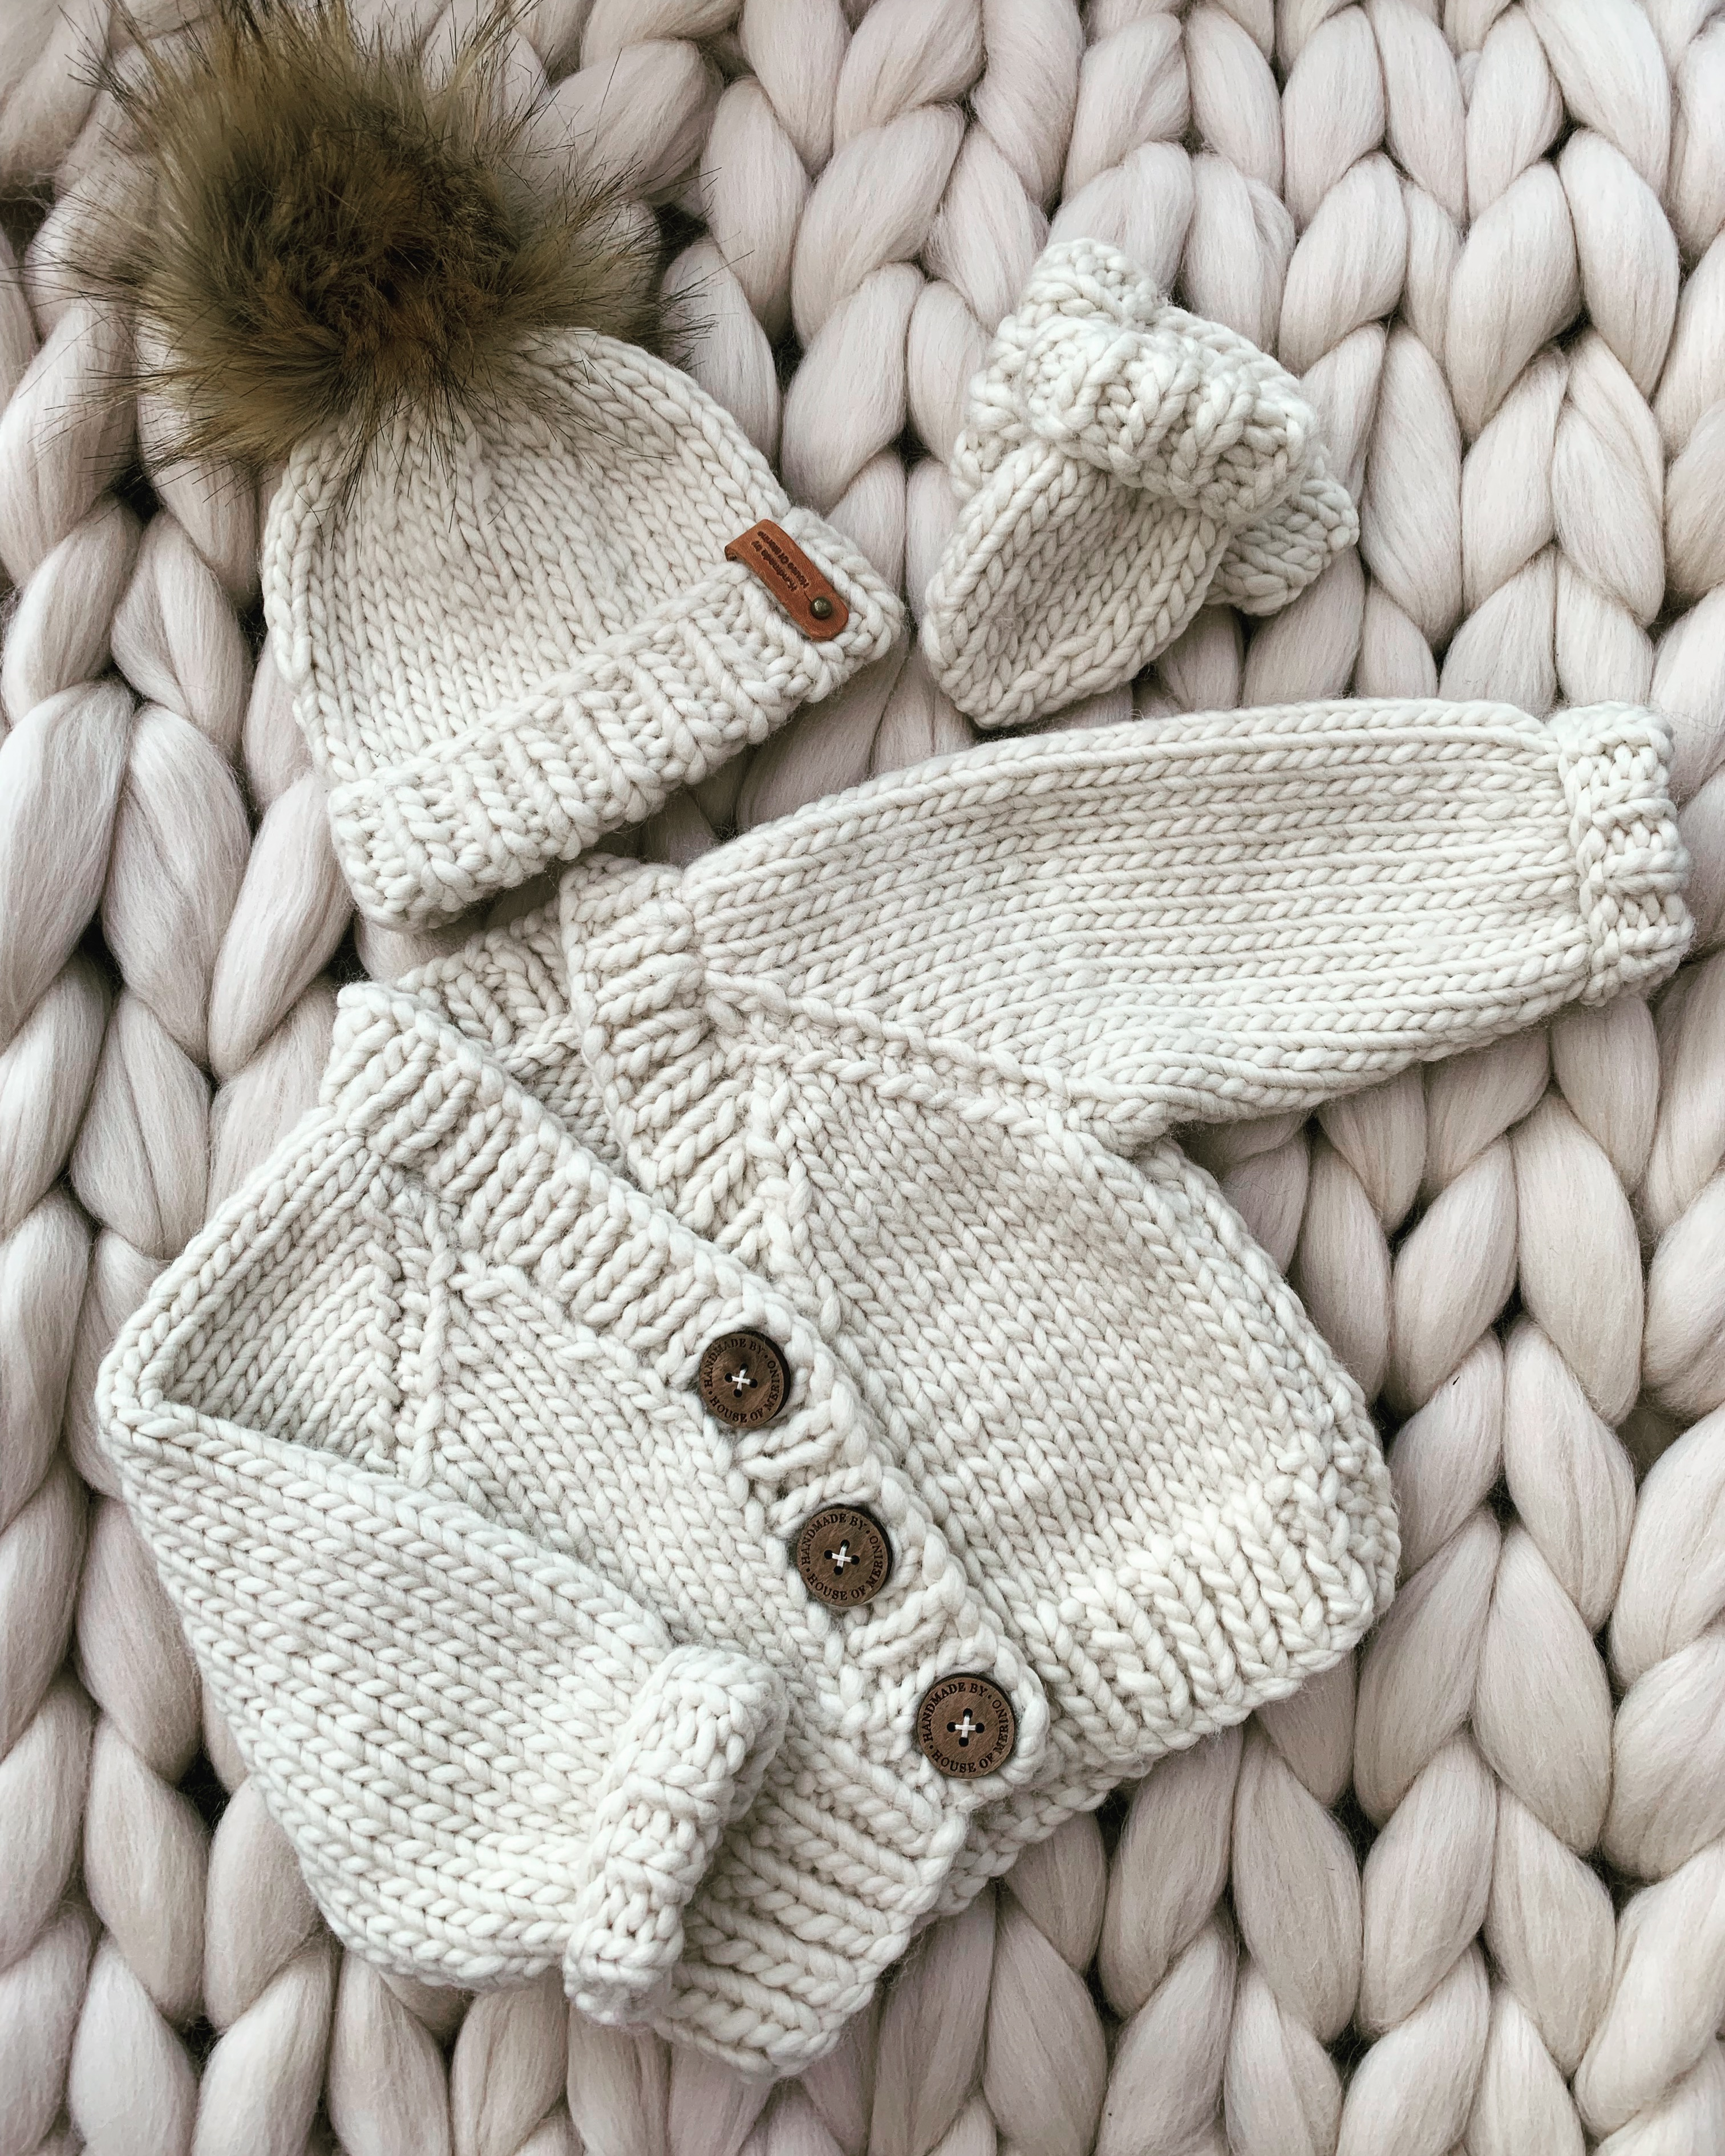 Merino chunky knit cardigan, hat and mittens set